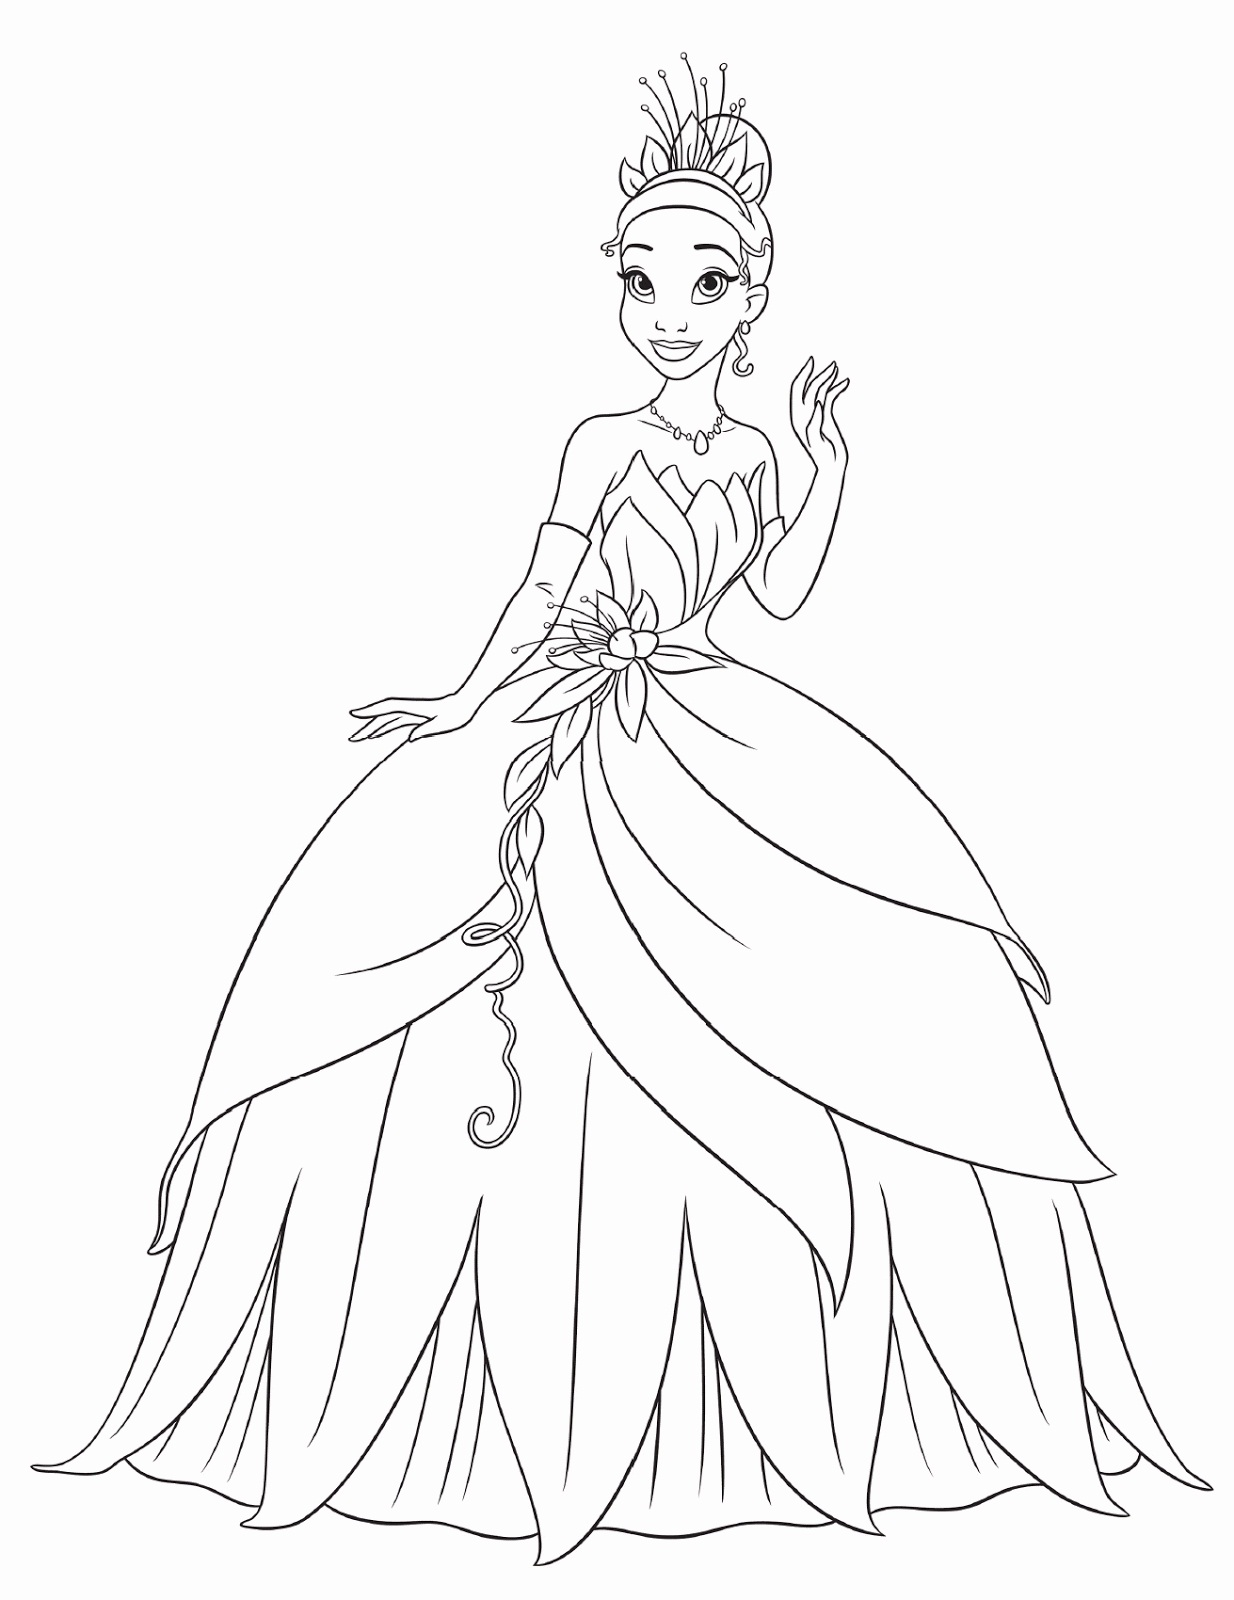 Free Printable Princess Tiana Coloring Pages For Kids Princess Coloring Image